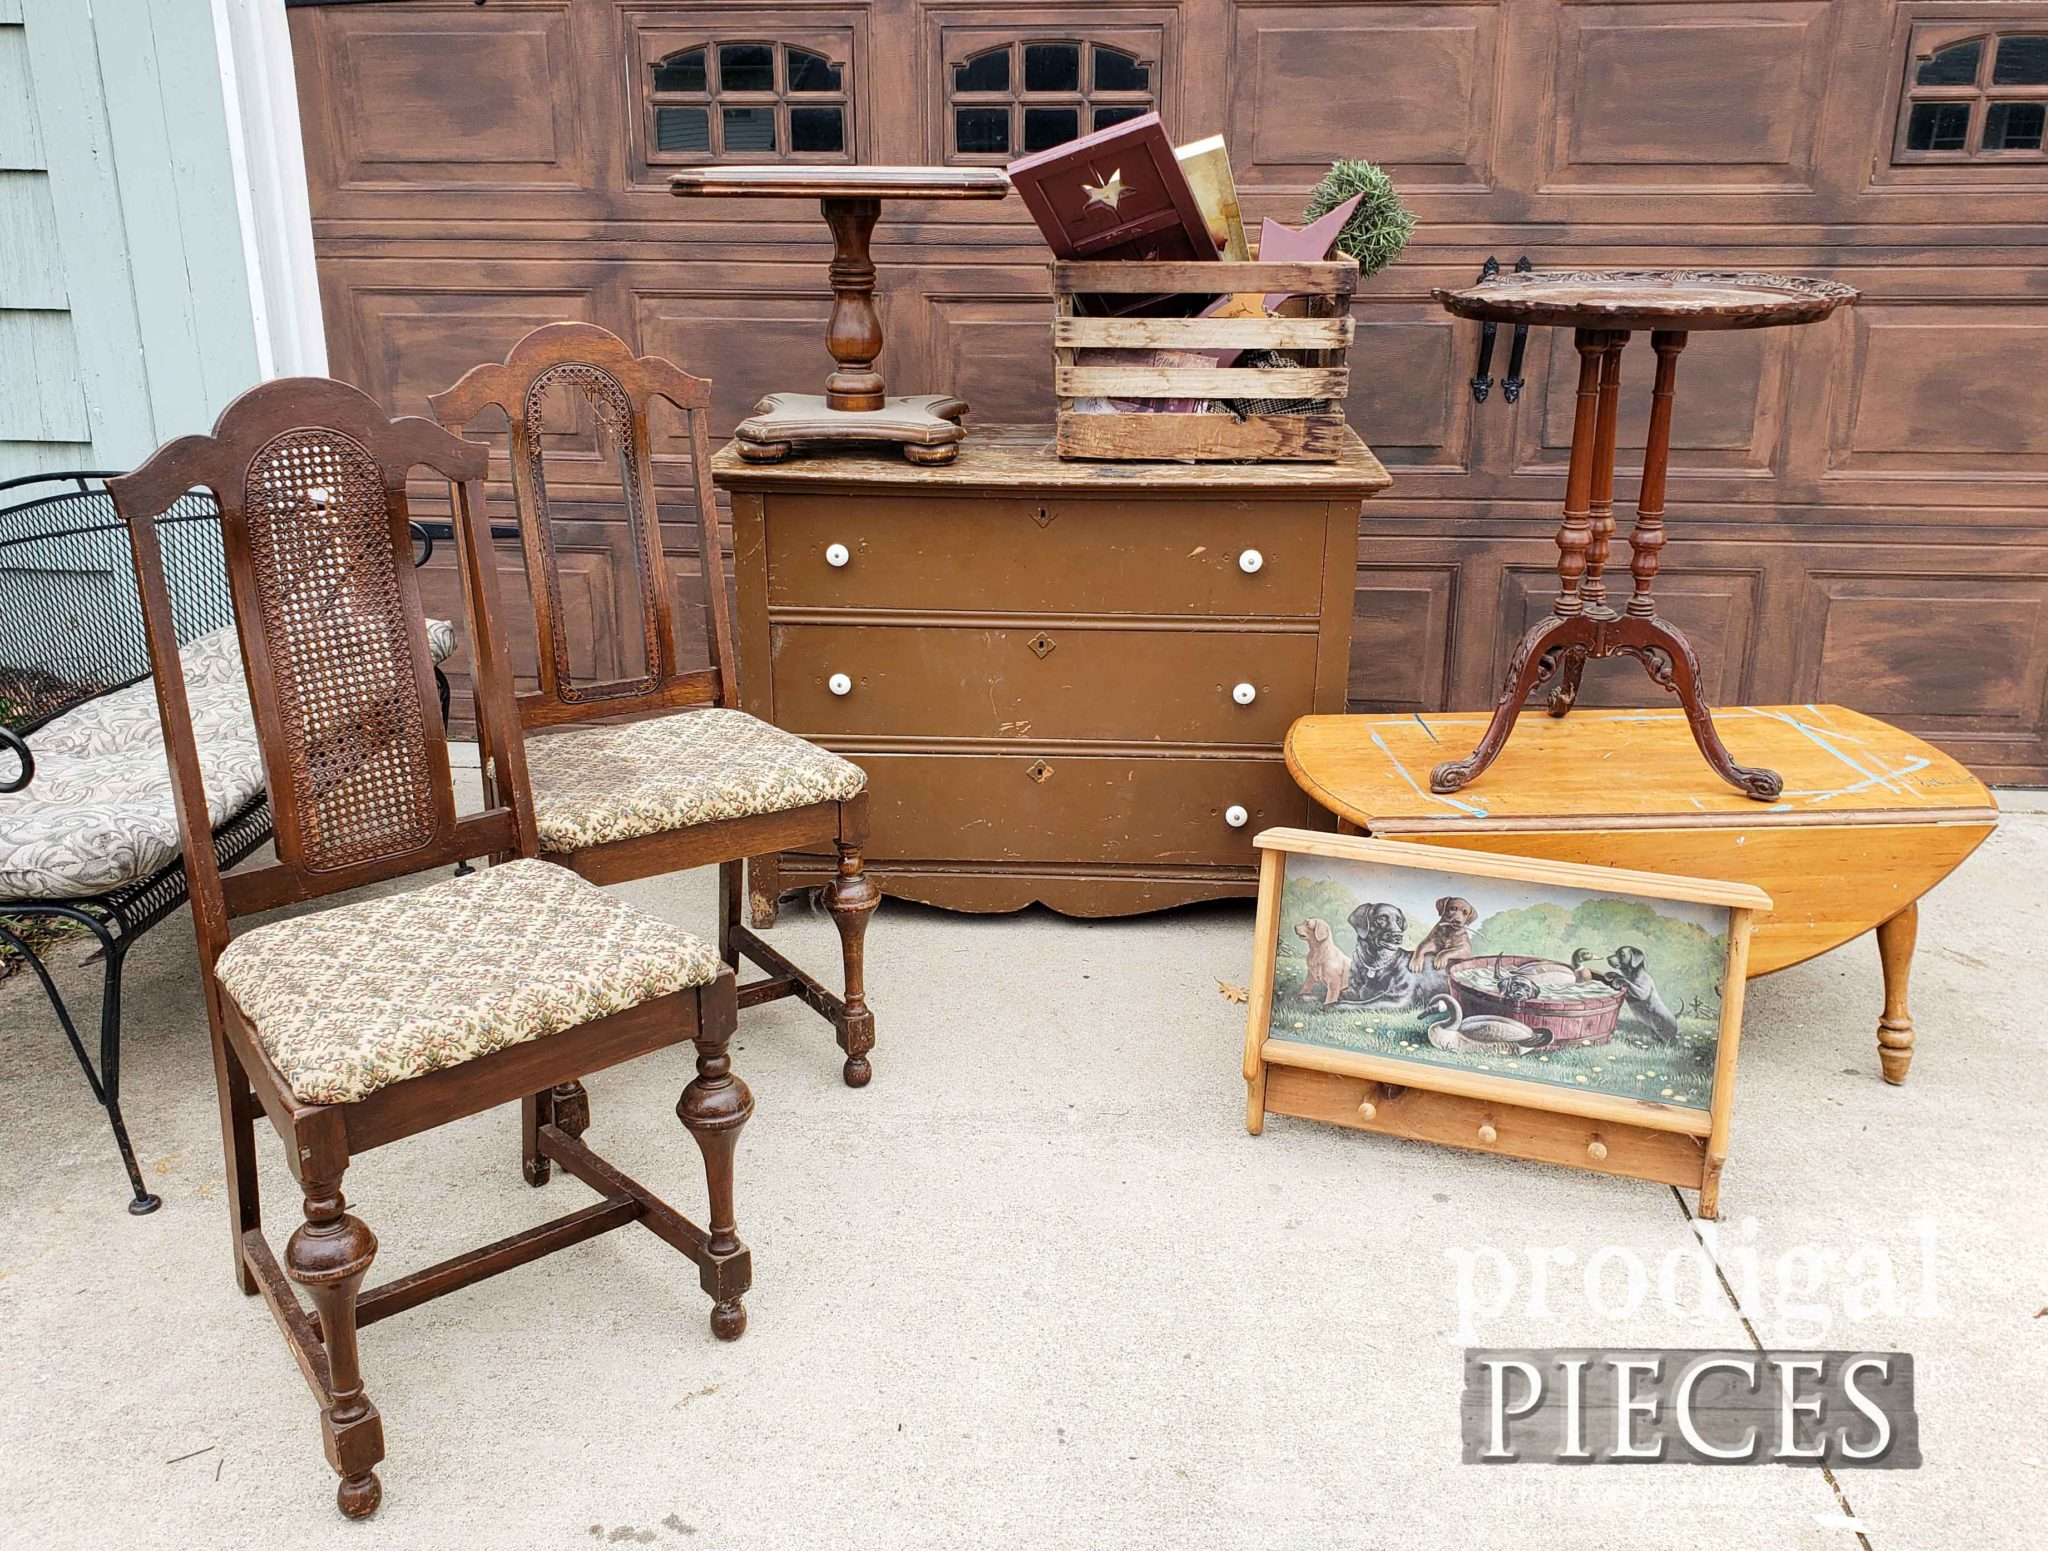 Pile of Furniture Found Curbside #trashure by Larissa of Prodigal Pieces | prodigalpieces.com